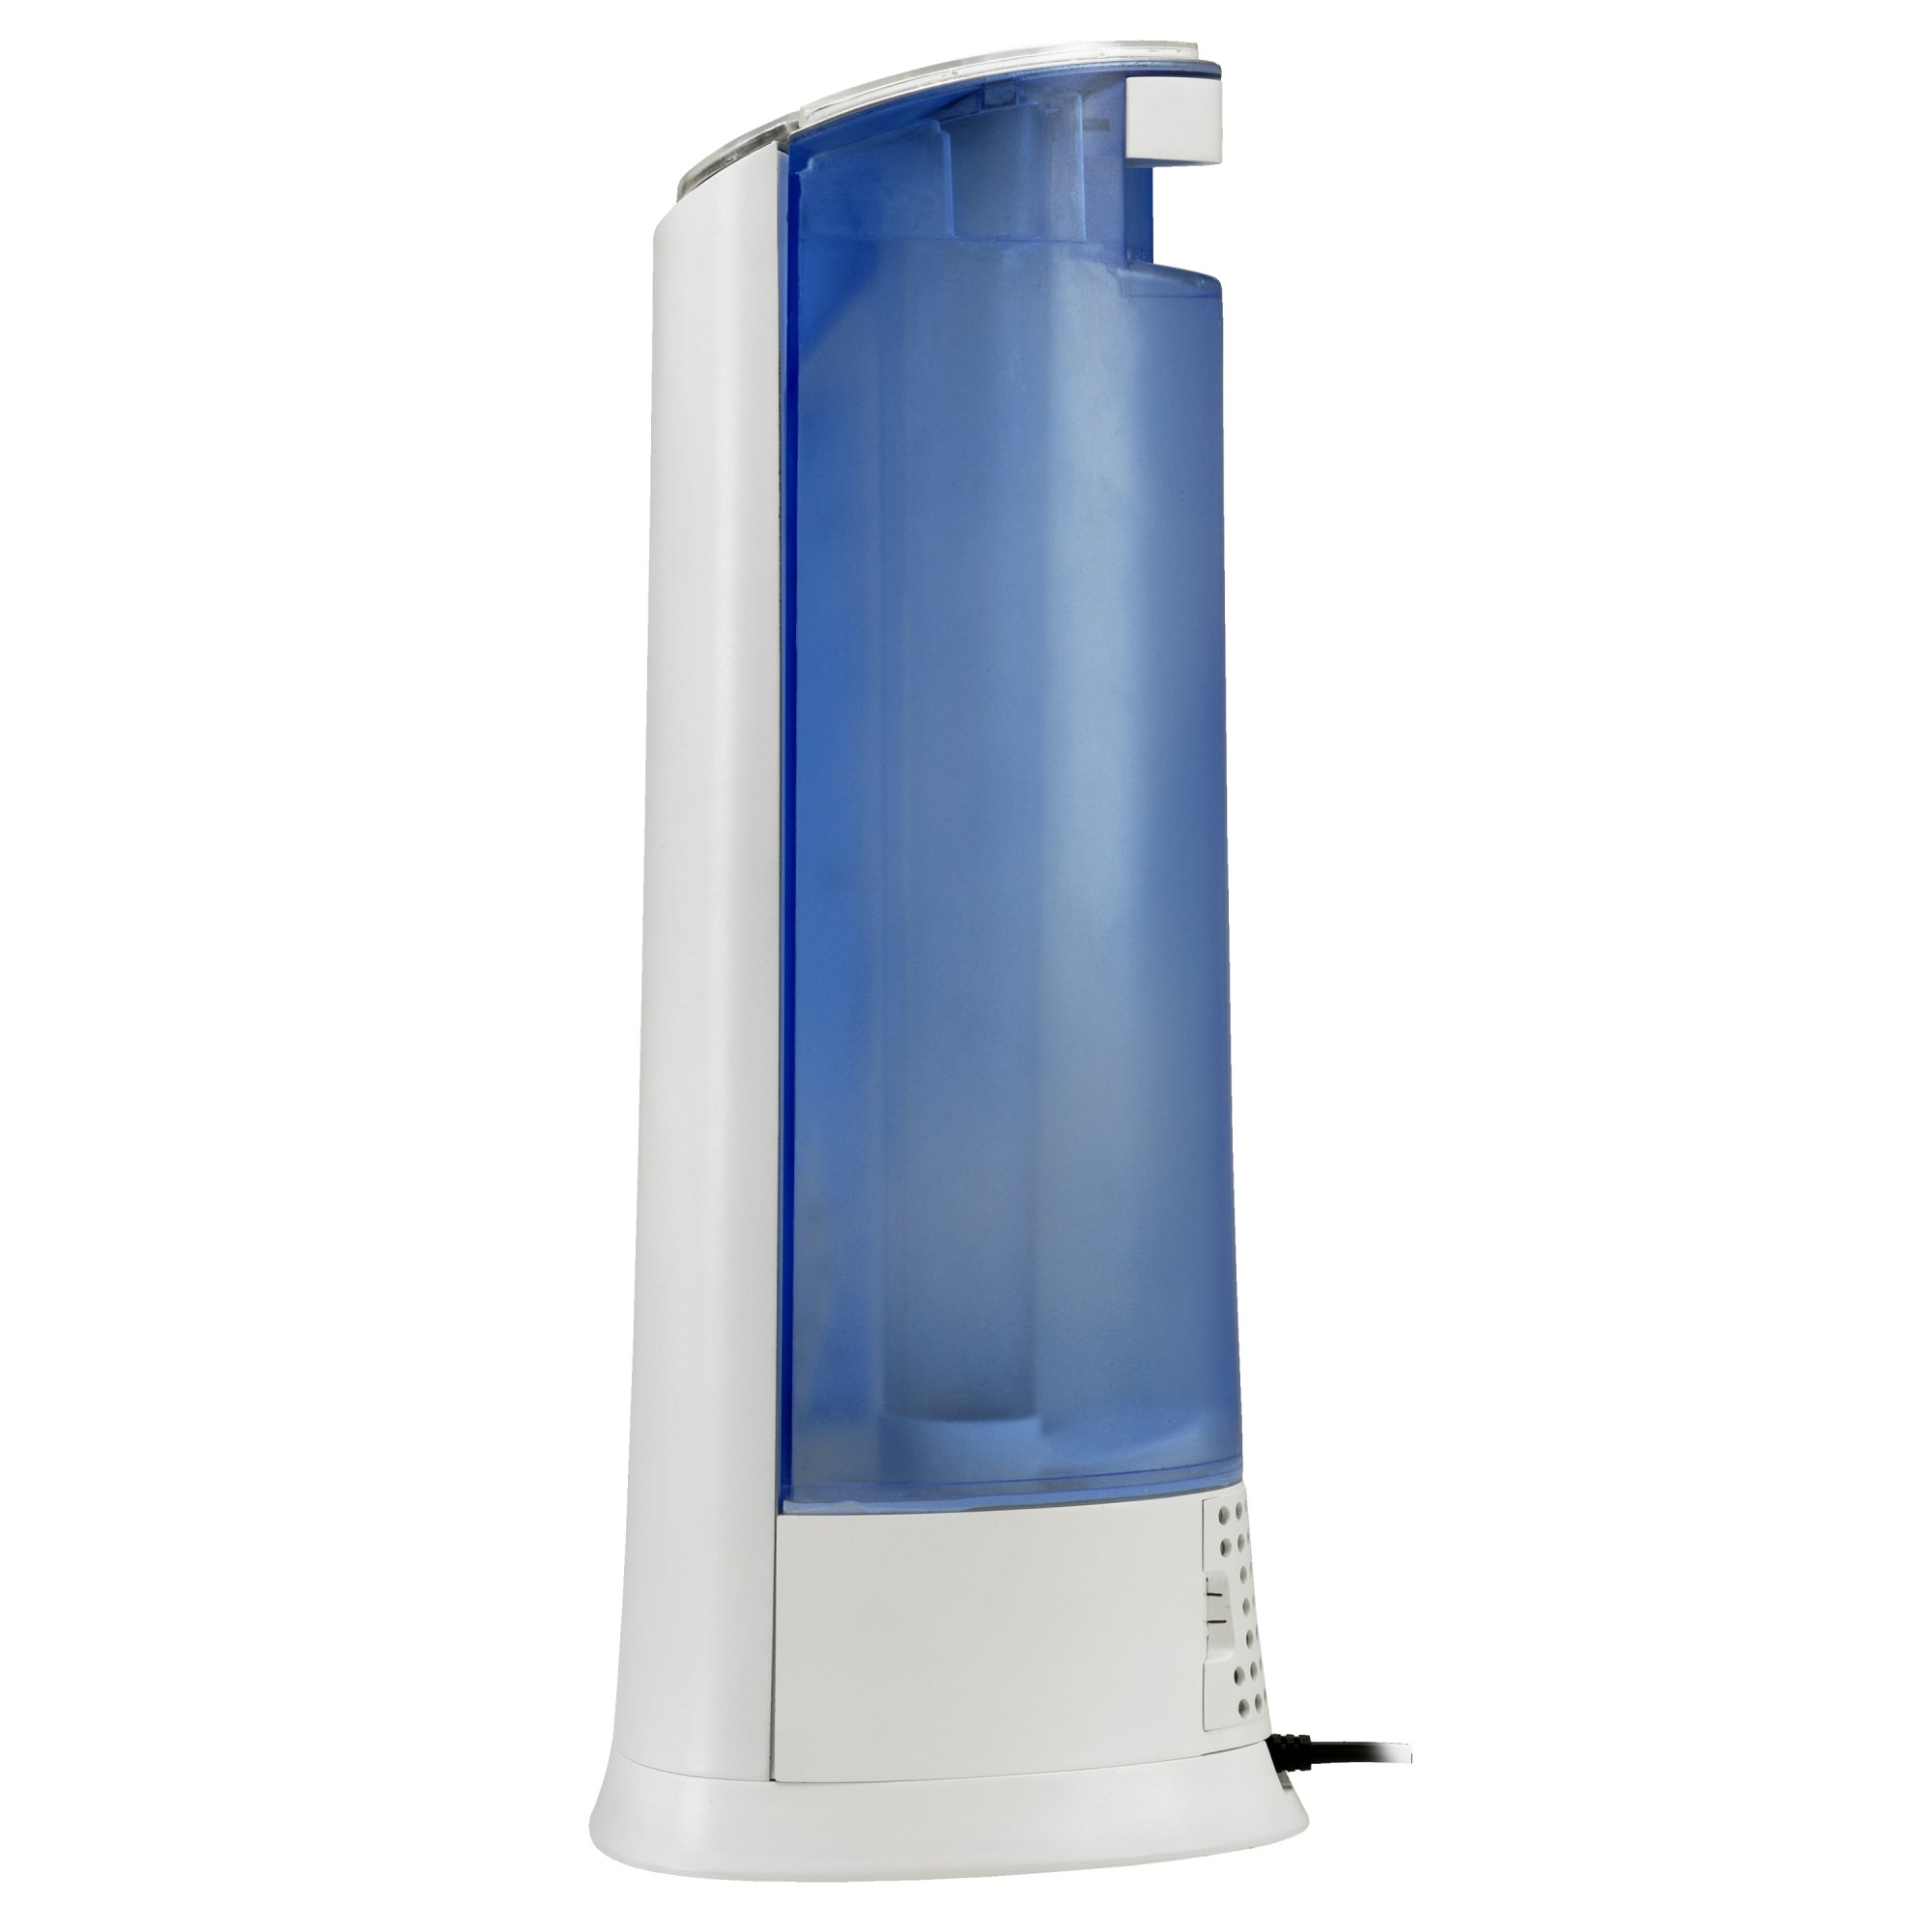 hight resolution of shop pureguardian h3200wca 100 hr 1 5 gal ultrasonic cool mist humidifier tower free shipping today overstock com 13190816